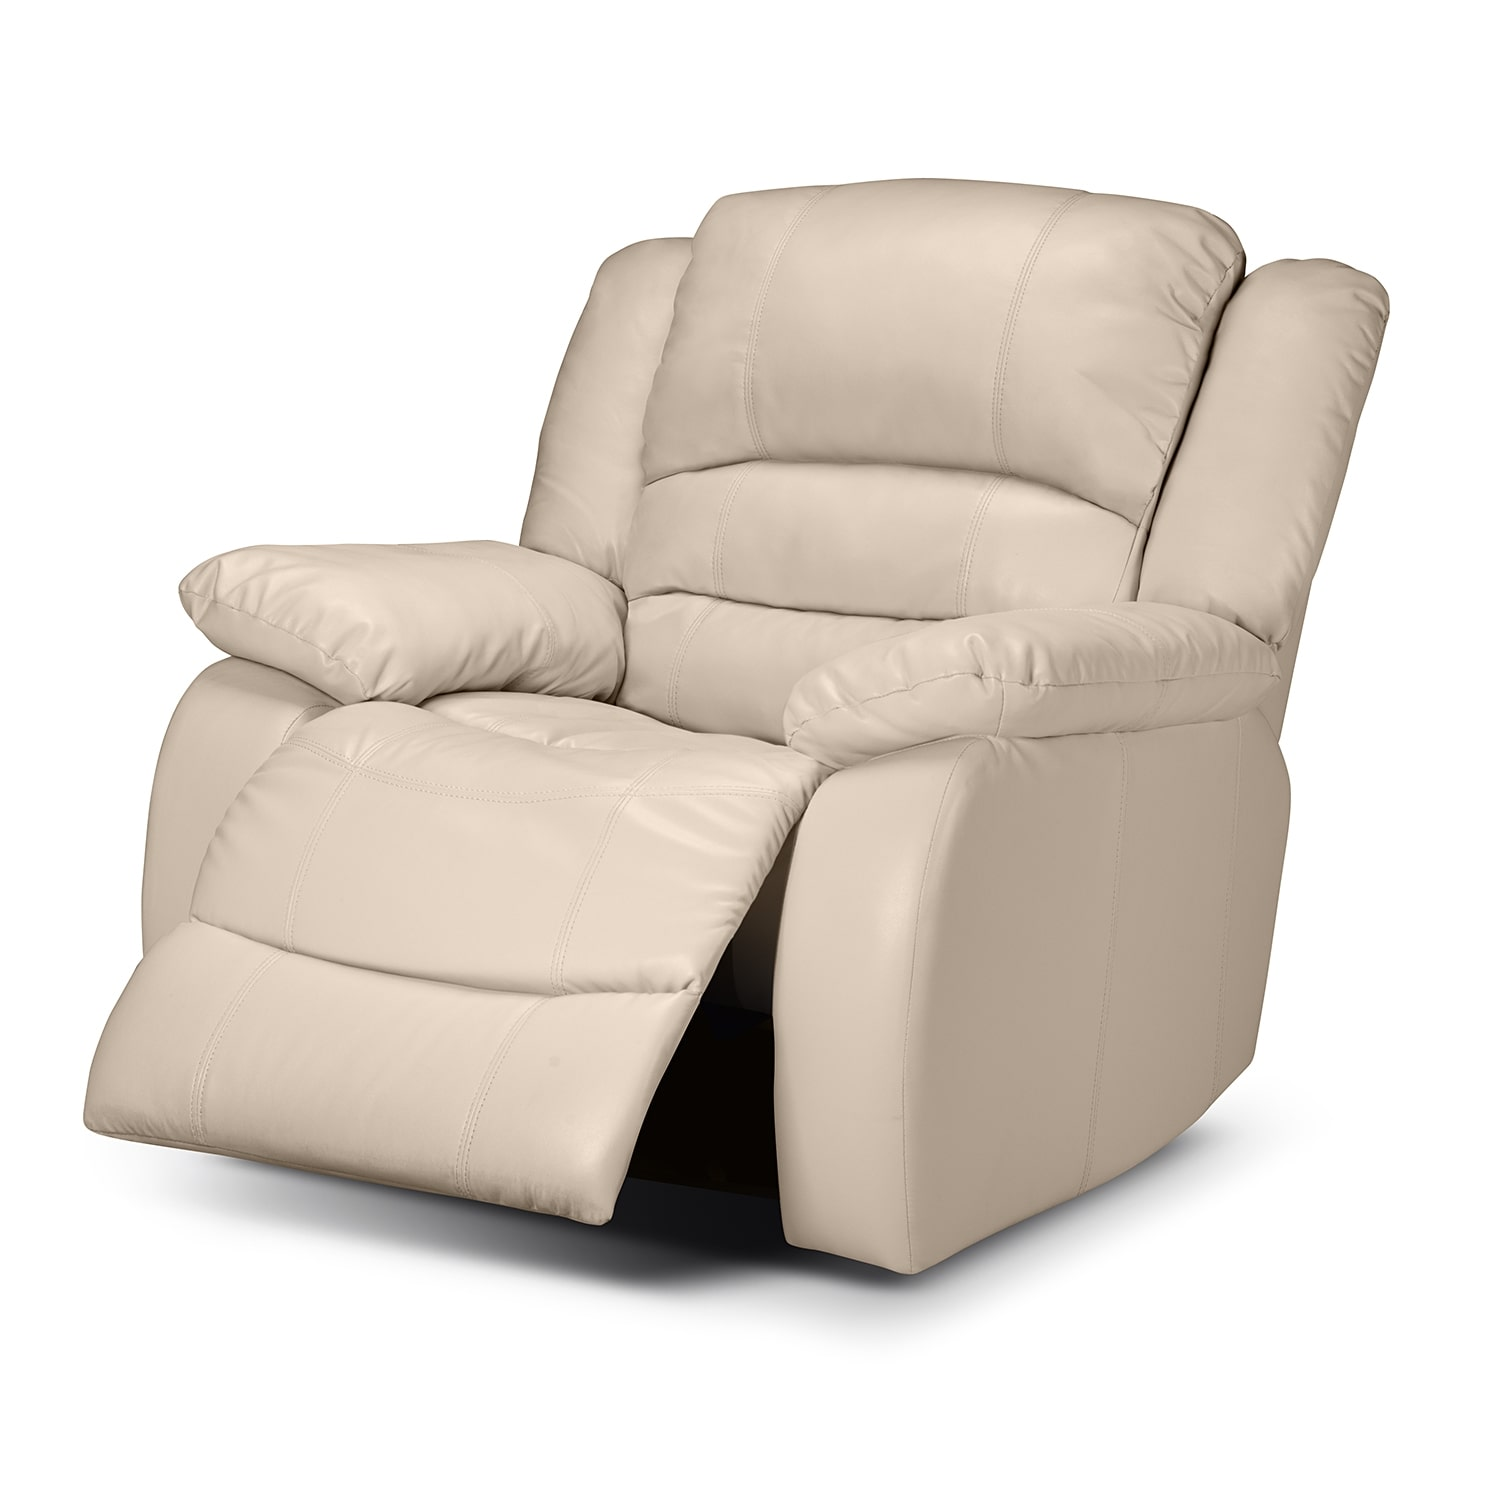 Rocker Recliner Loveseat Sale Sofa Chair